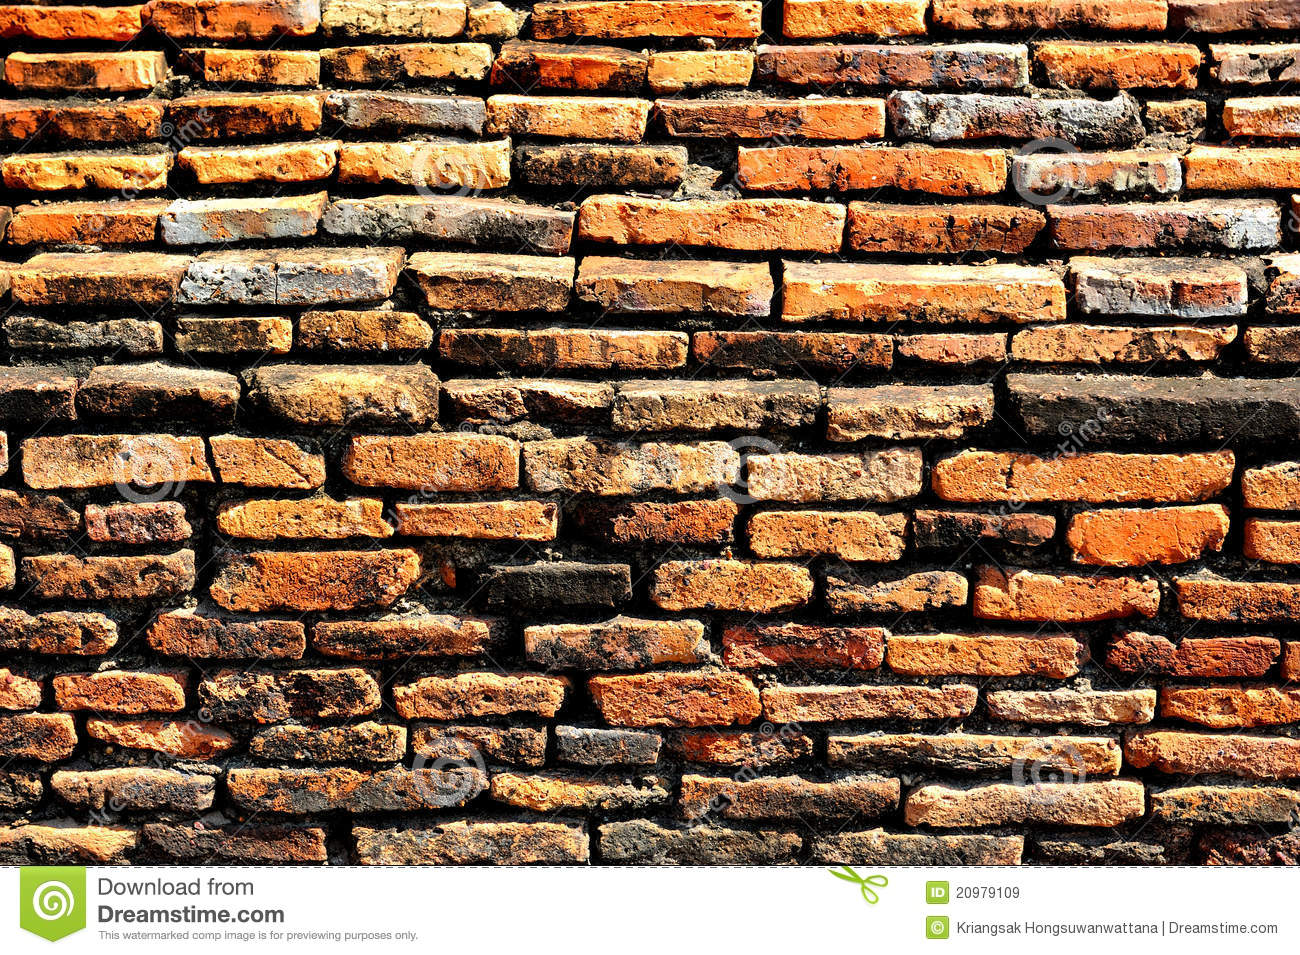 Brick Block Wallpaper Royalty Free Stock Images Image